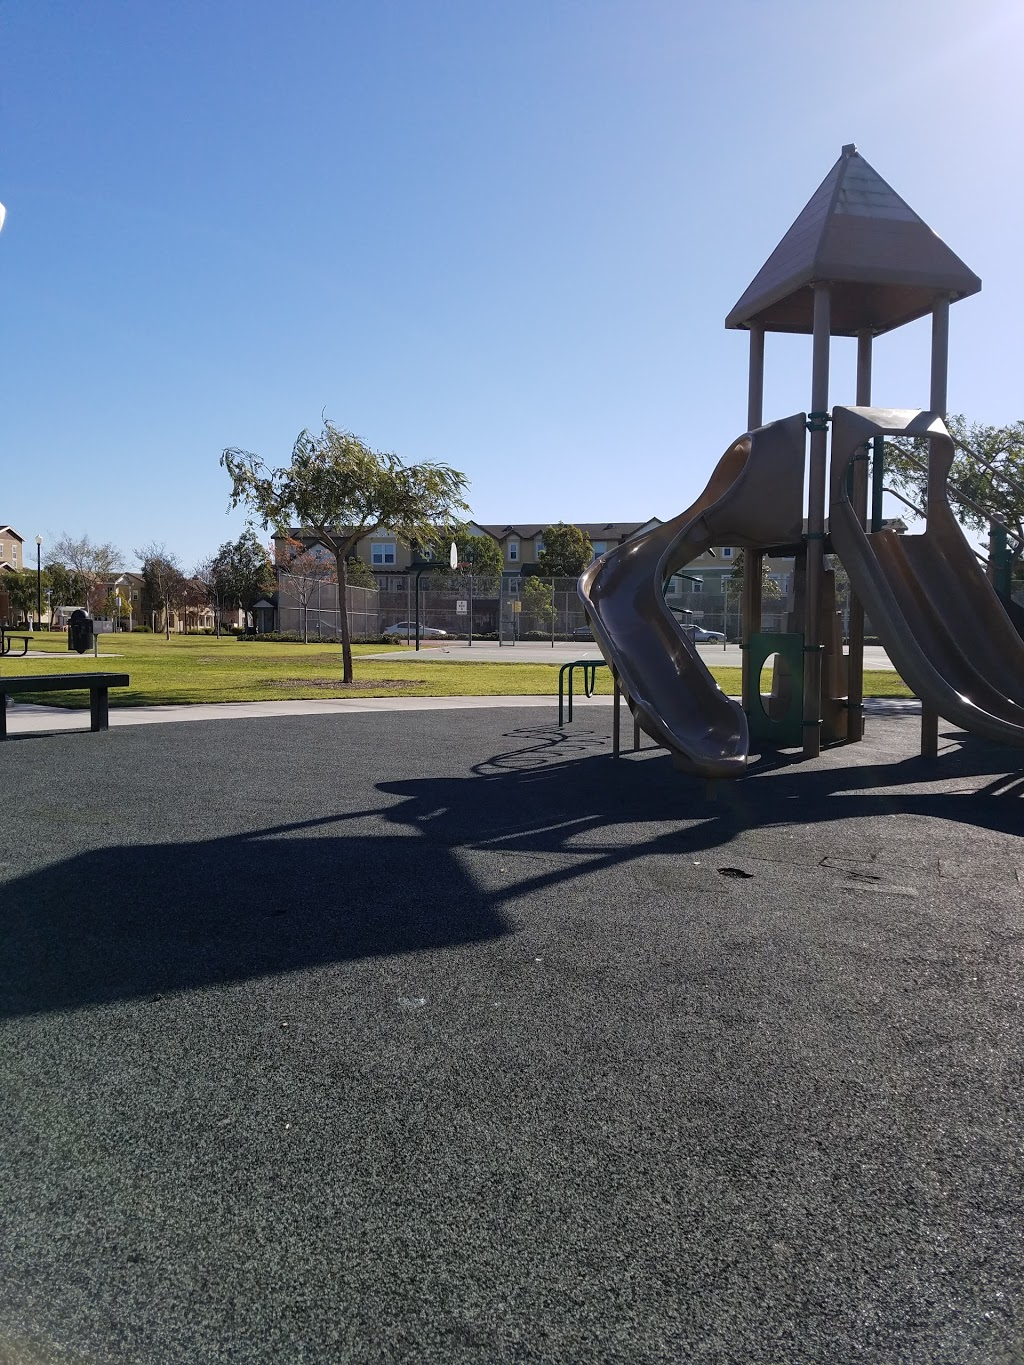 East Park - park  | Photo 1 of 10 | Address: 351 Indus Pl, Oxnard, CA 93036, USA | Phone: (805) 385-7950